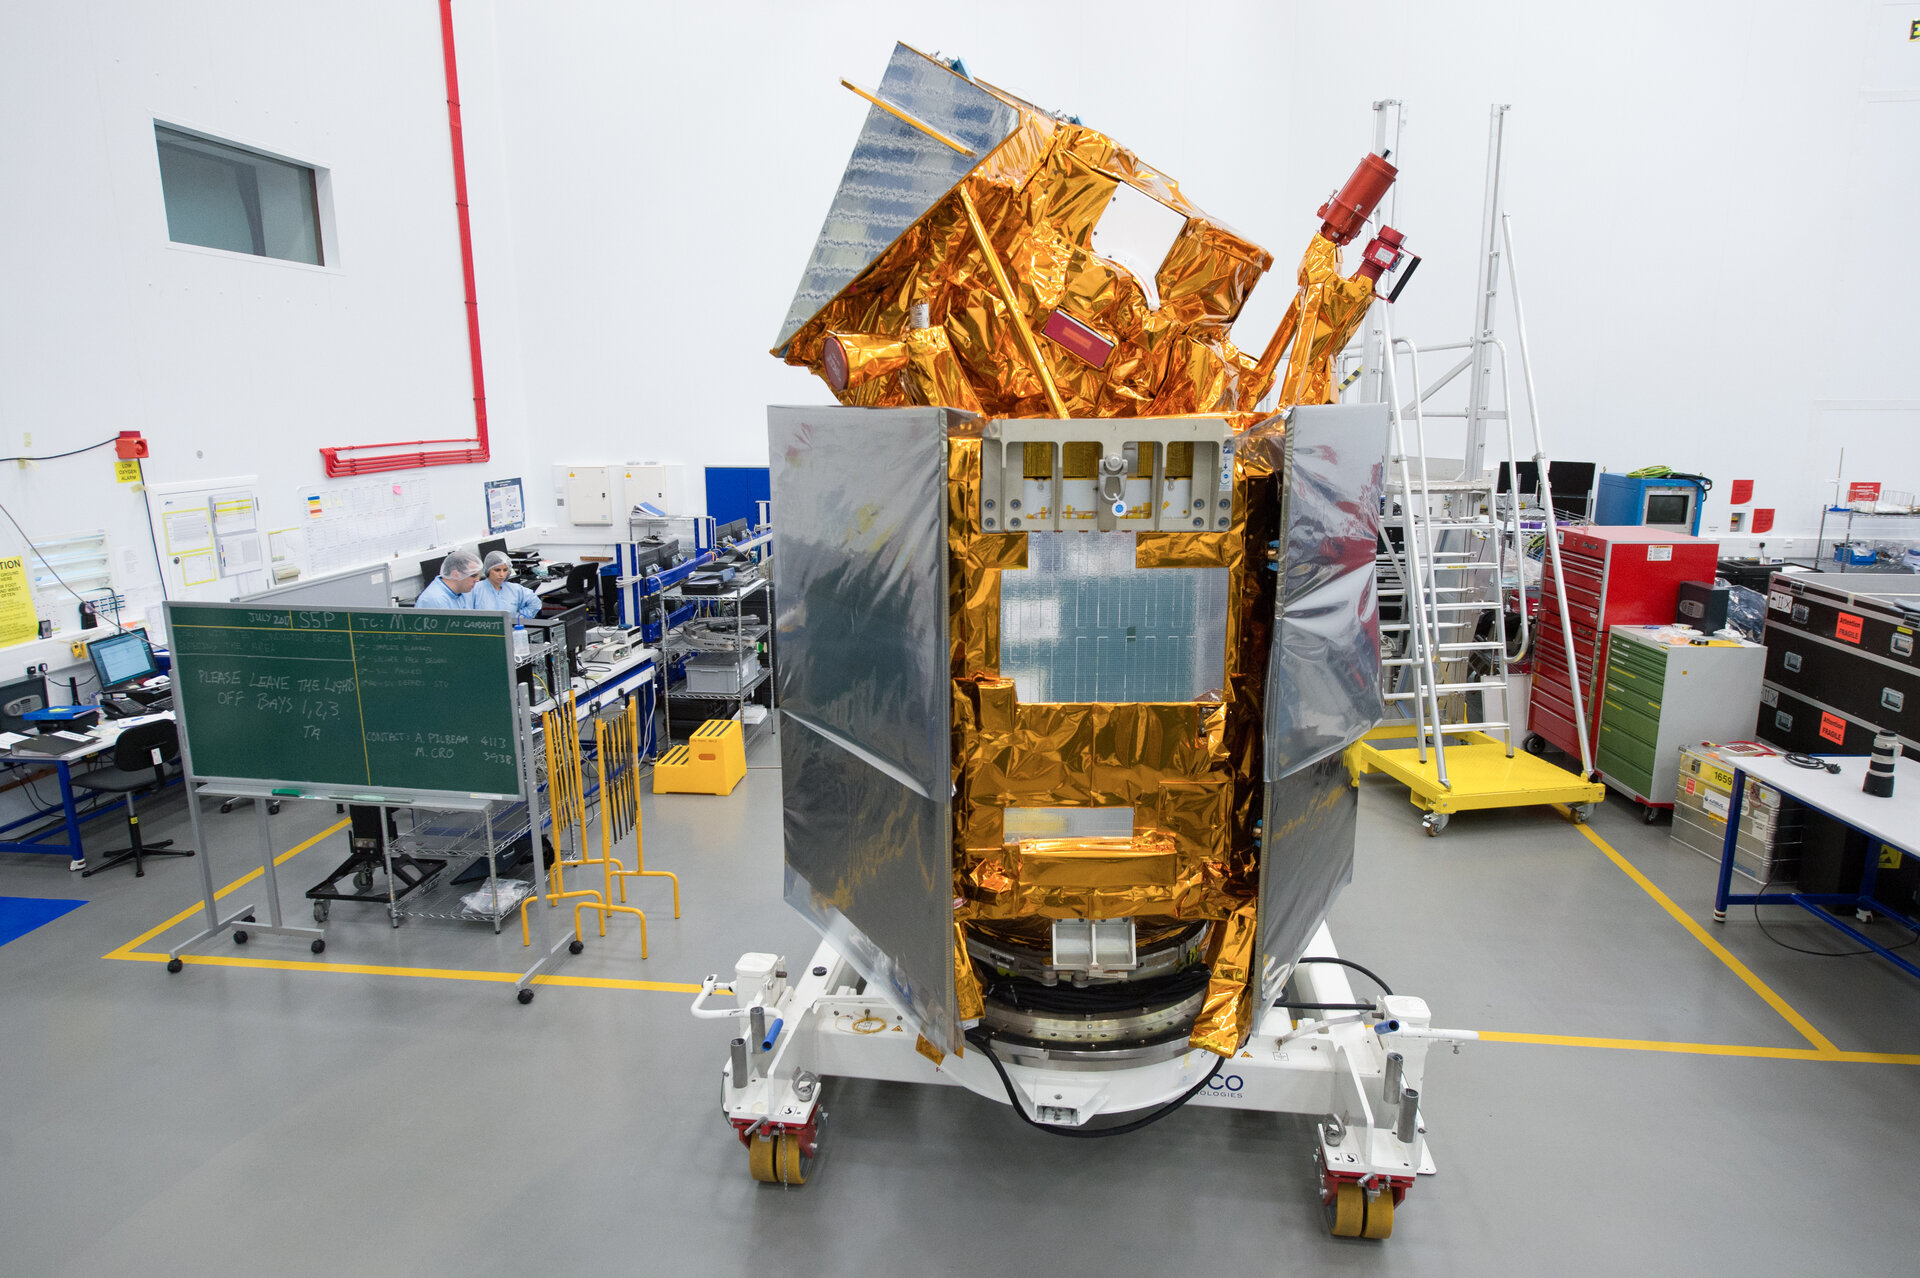 Sentinel-5P on show